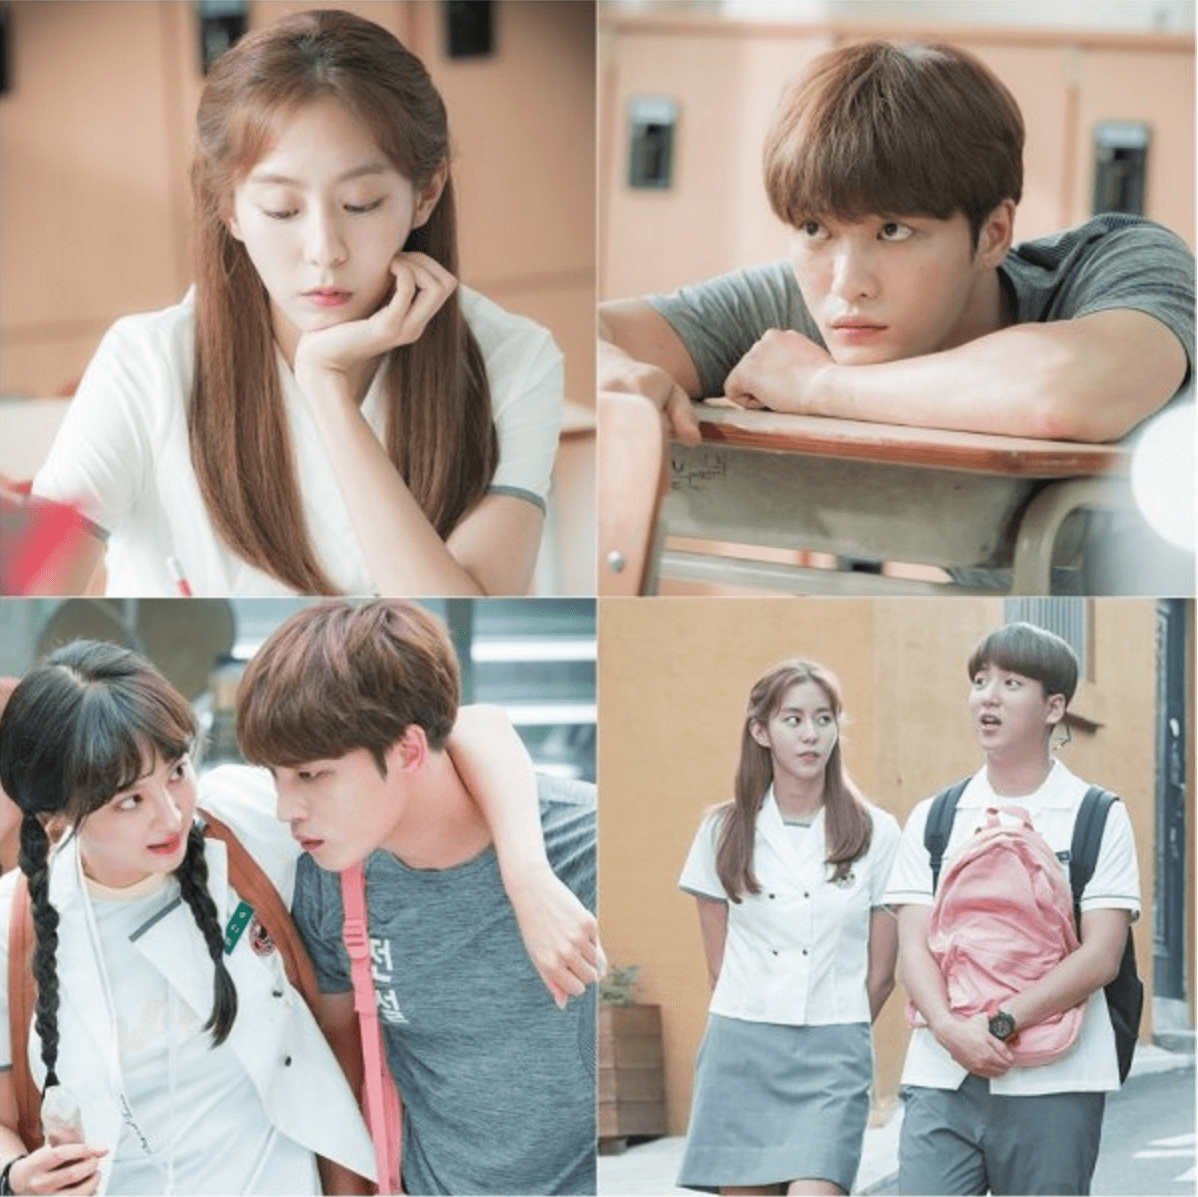 """Manhole"" Releases Teasers Of UEE, Kim Jaejoong, Jung Hye Sung, And B1A4's Baro In High School Uniforms"